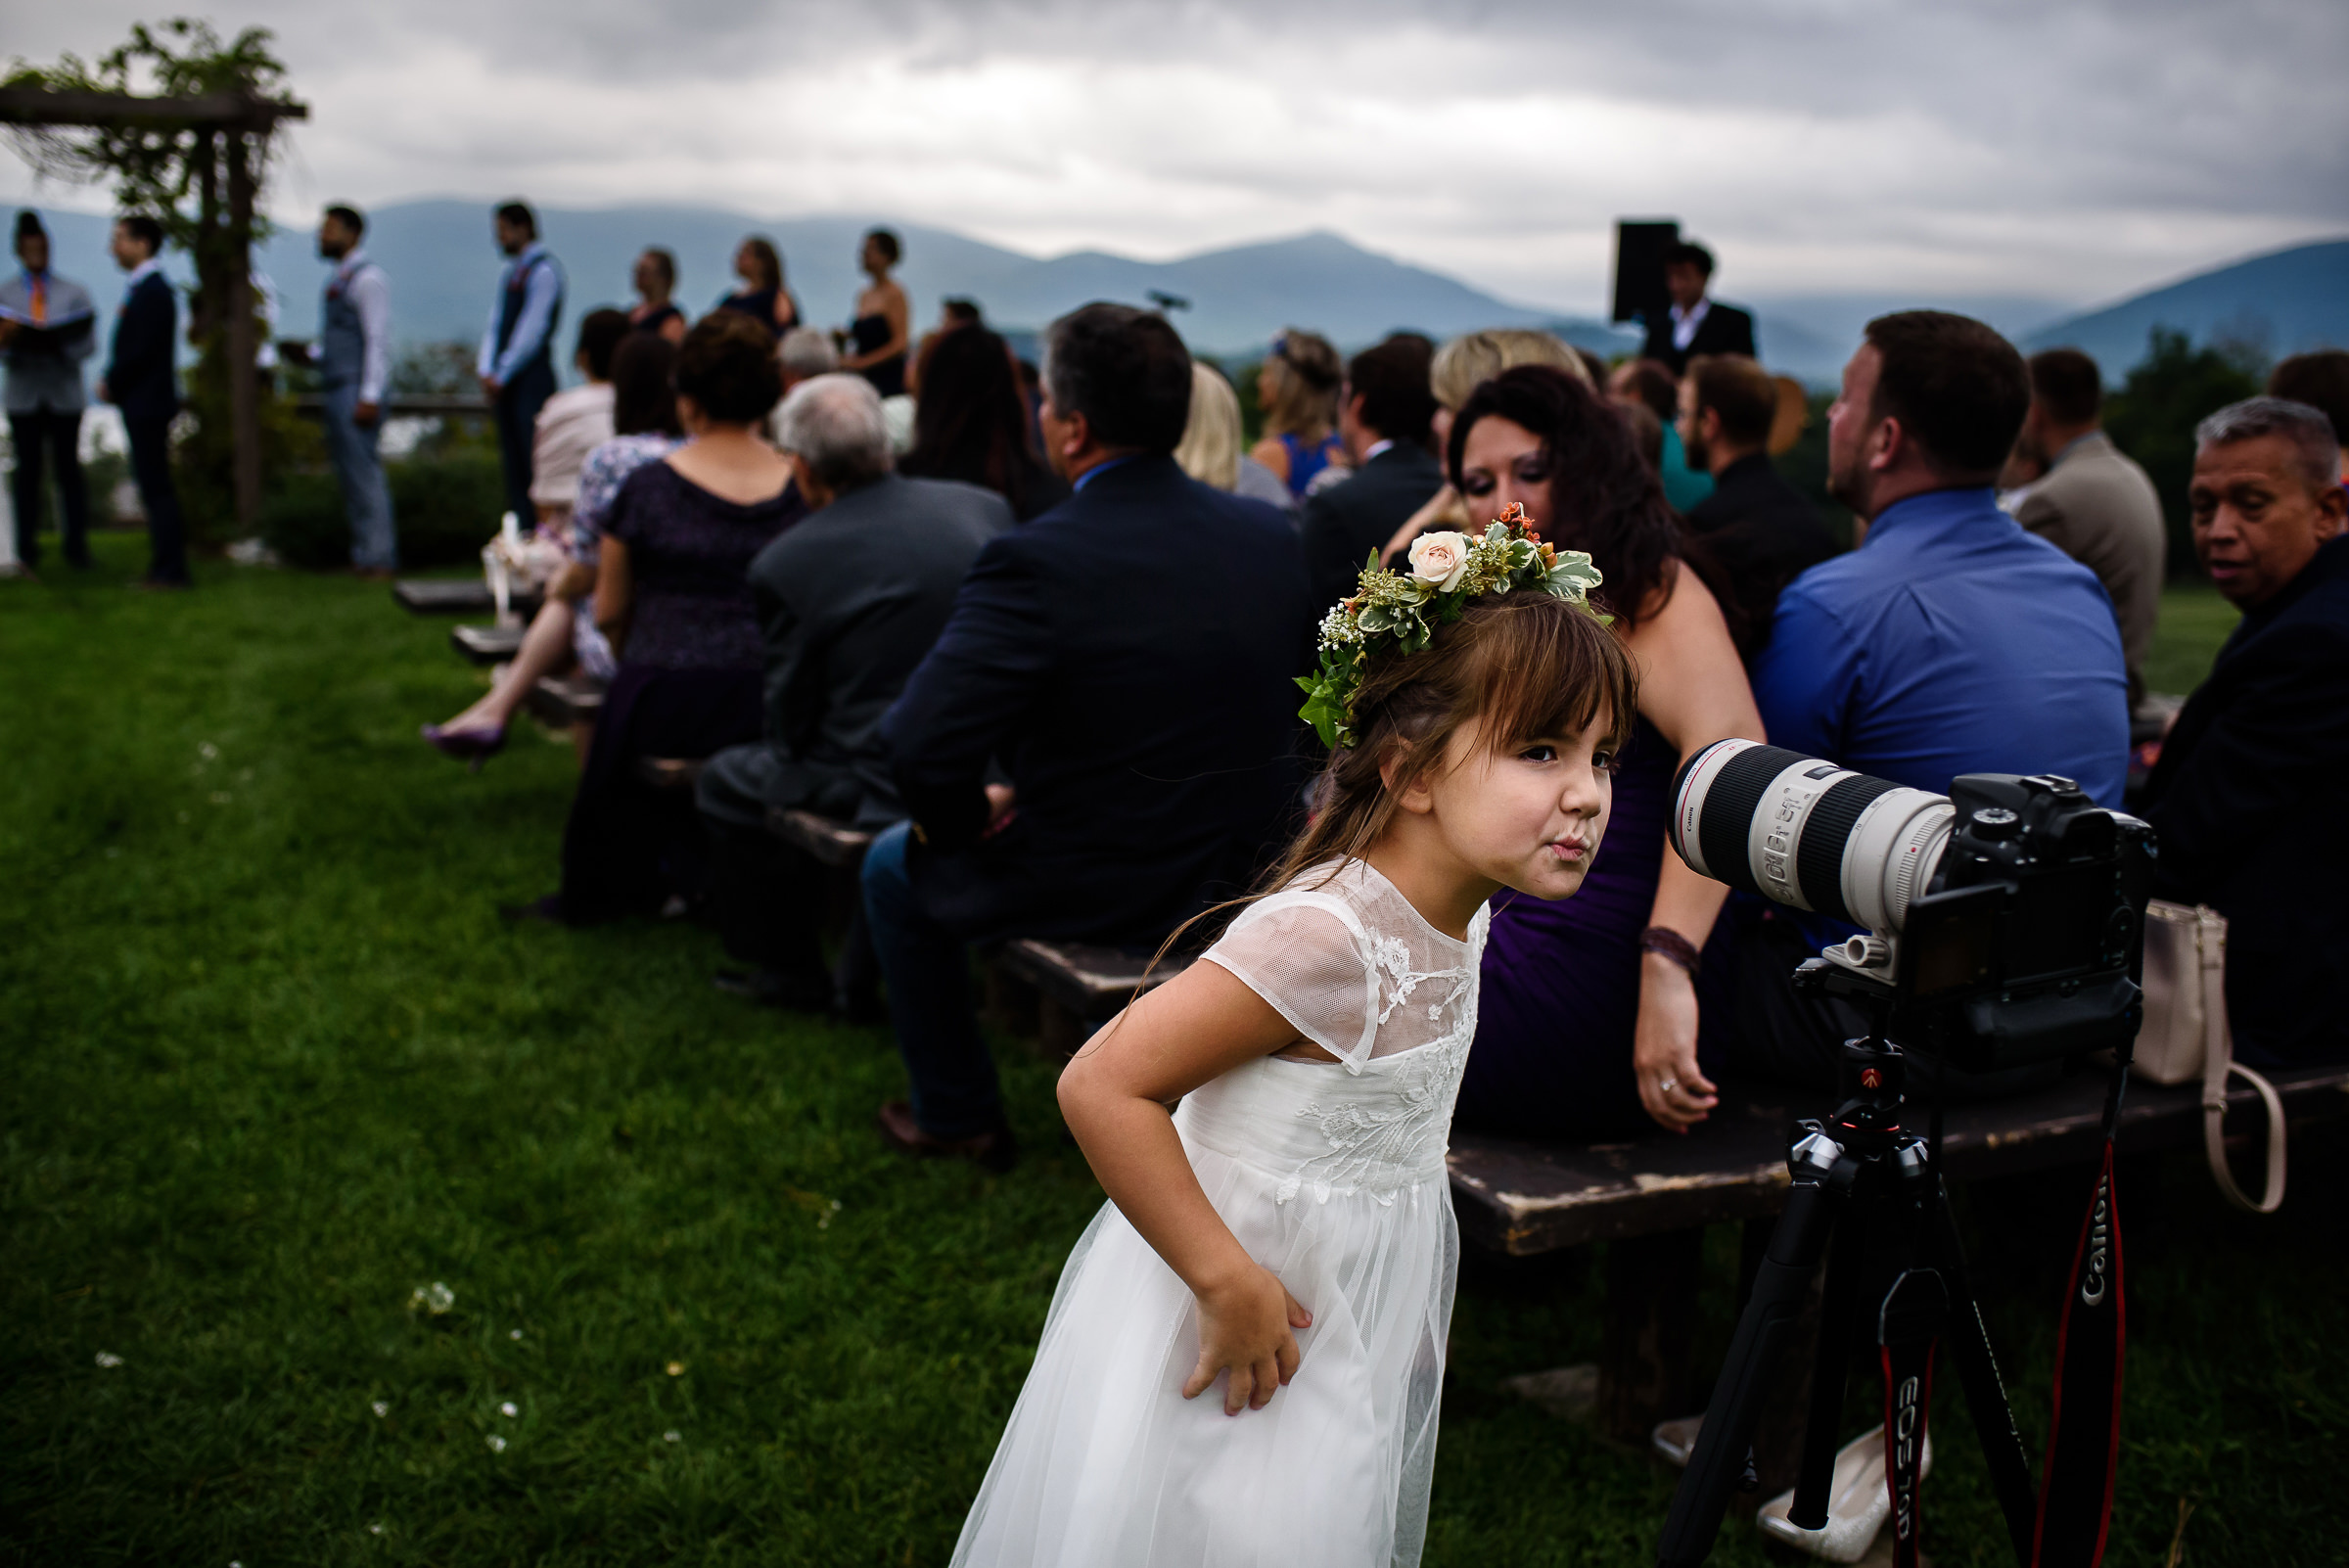 flower girl checking out the photographers lens during the ceremony- photo by Hannah Photography